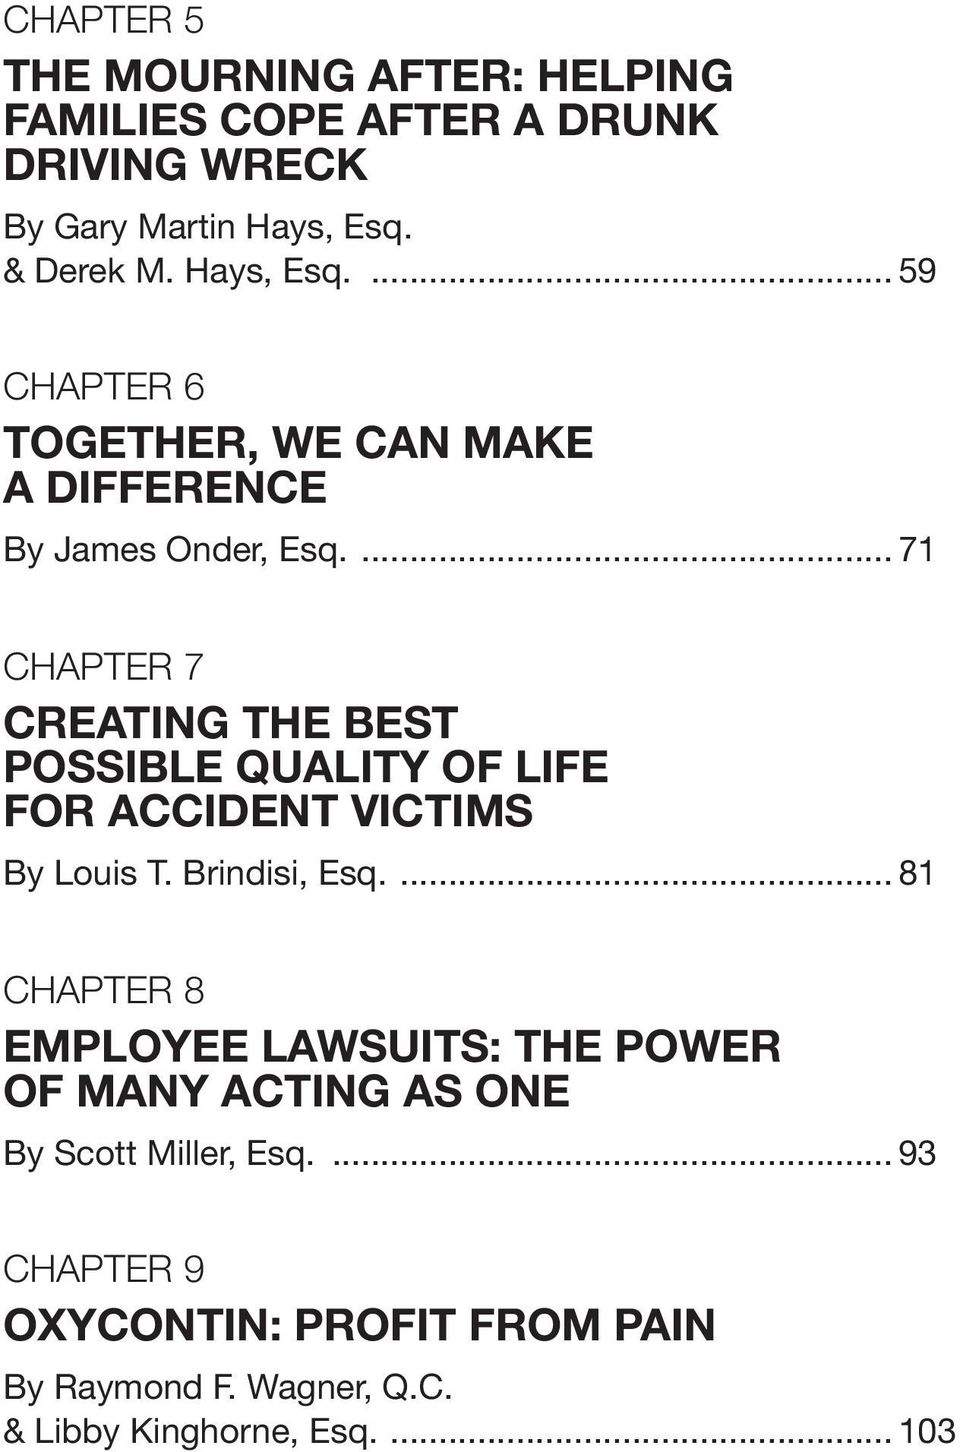 ... 71 Chapter 7 Creating The Best Possible Quality Of Life For Accident Victims By Louis T. Brindisi, Esq.